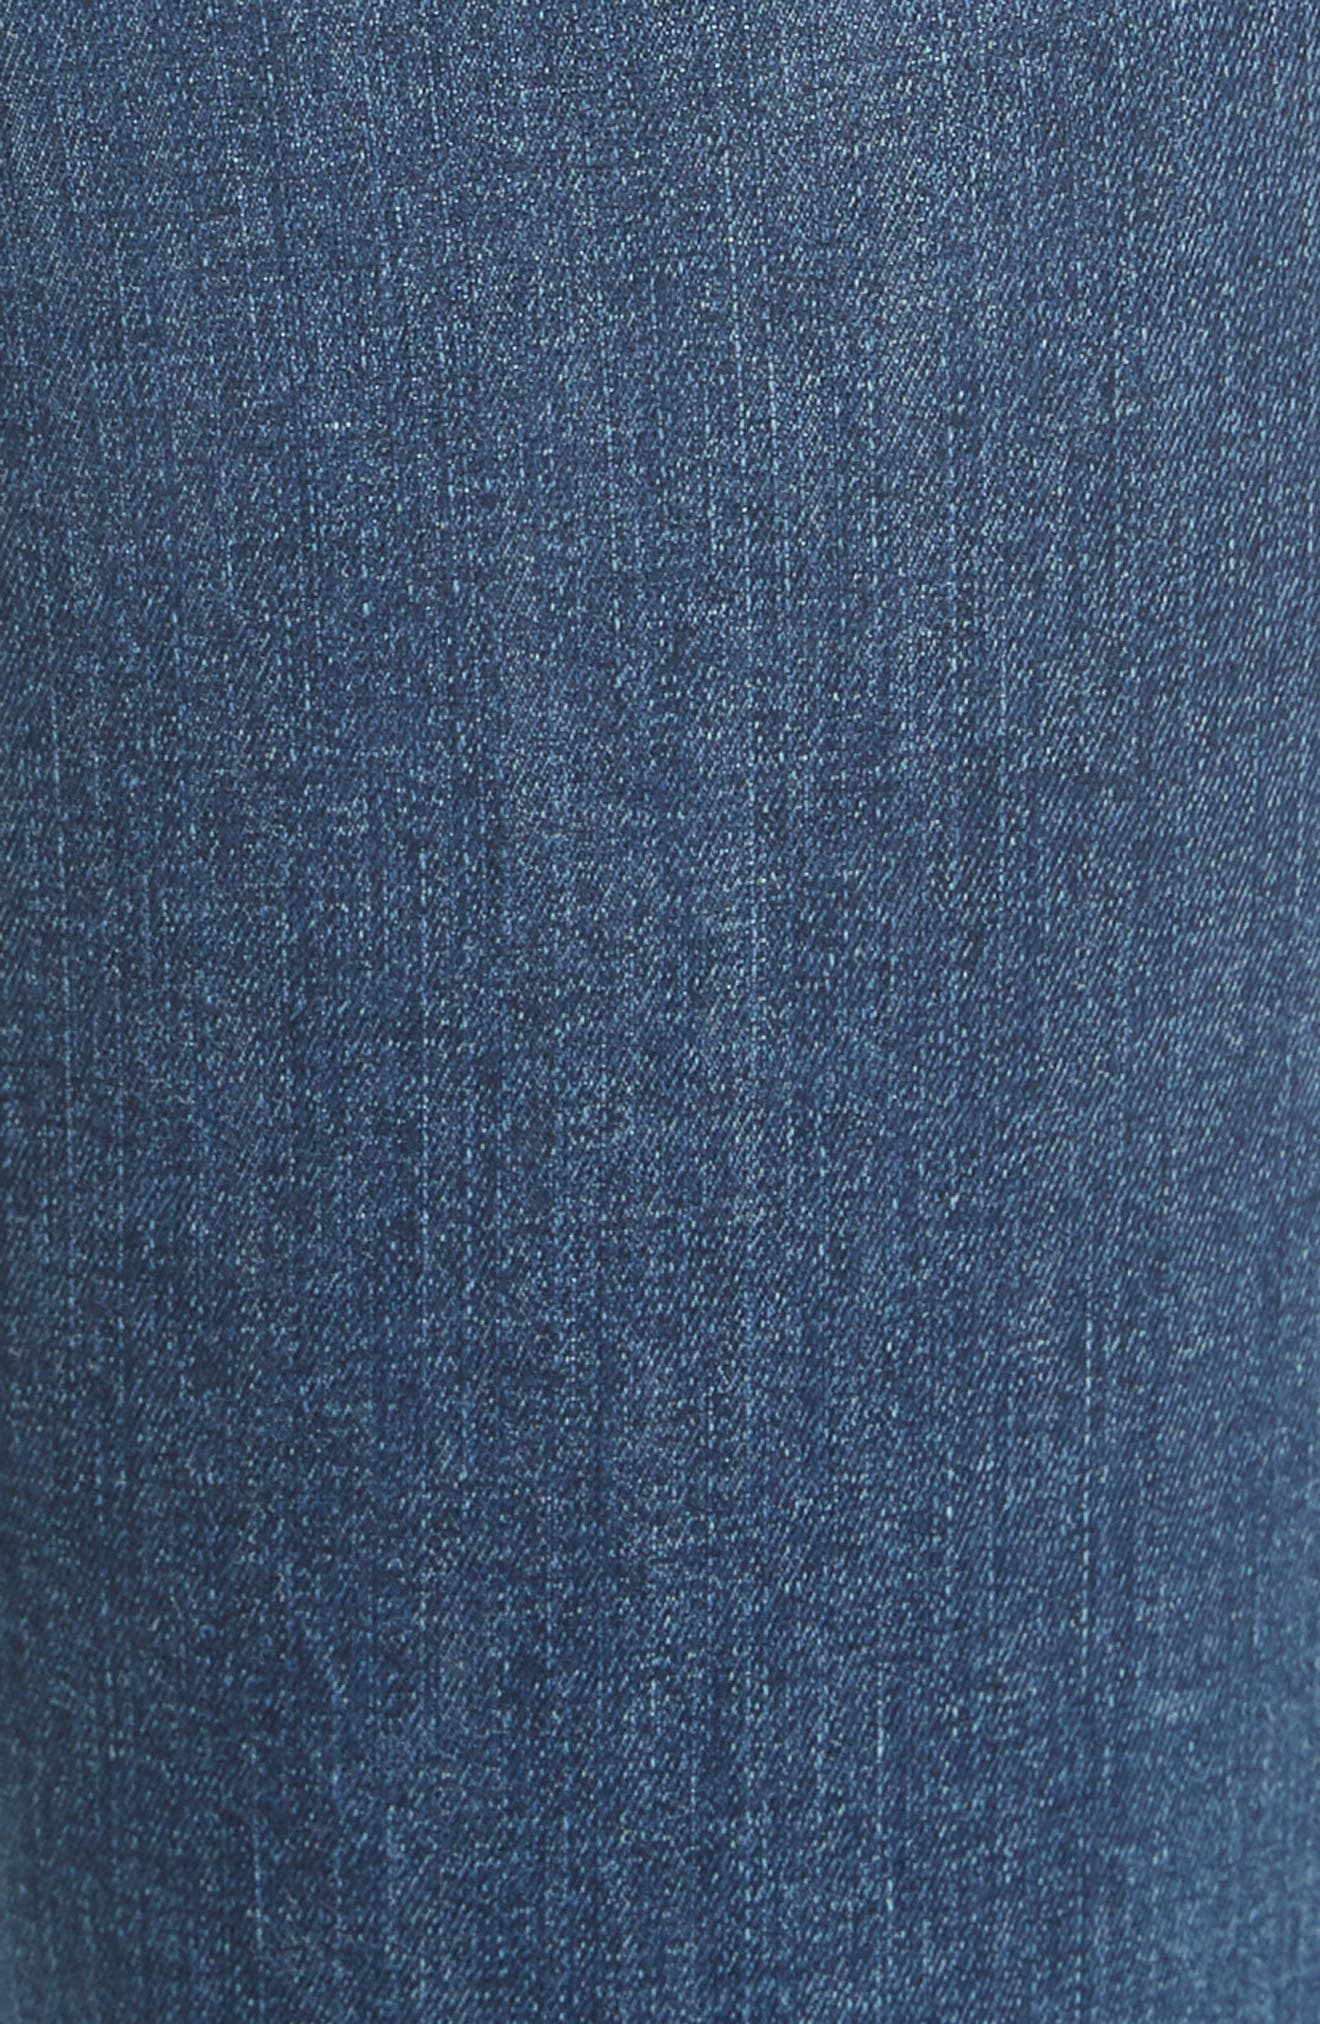 Crop Bootcut Jeans,                             Alternate thumbnail 6, color,                             ADRIANA